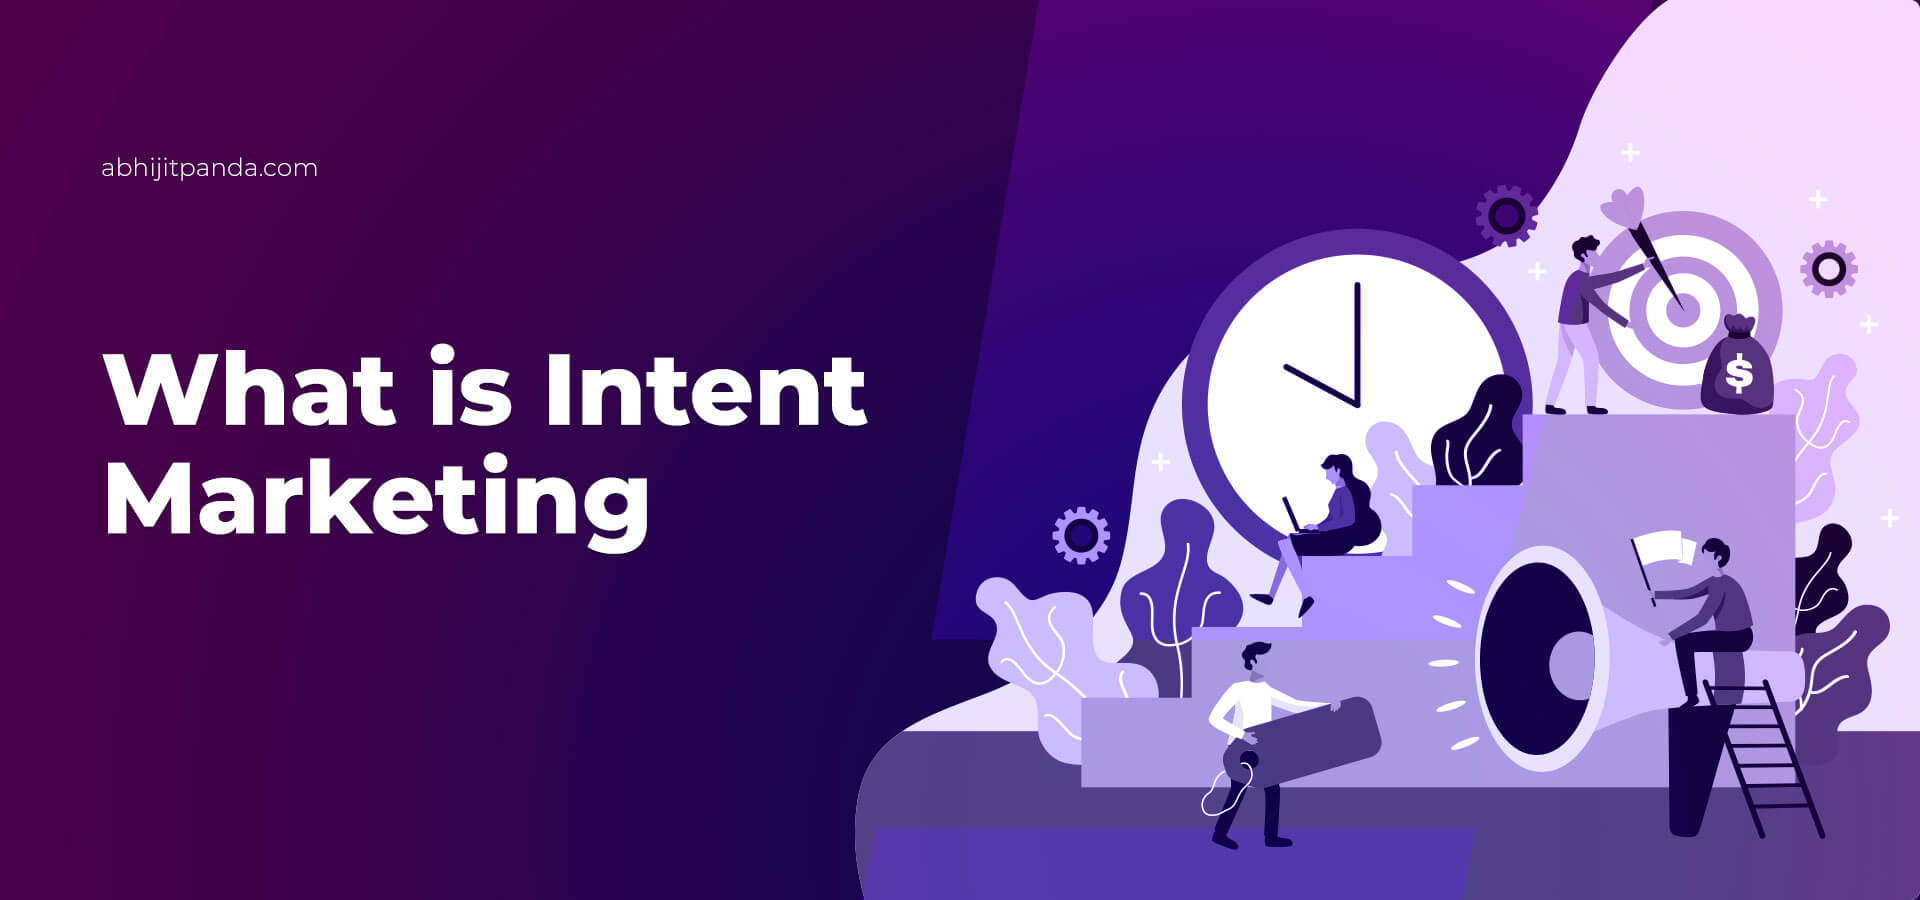 What is Intent Marketing